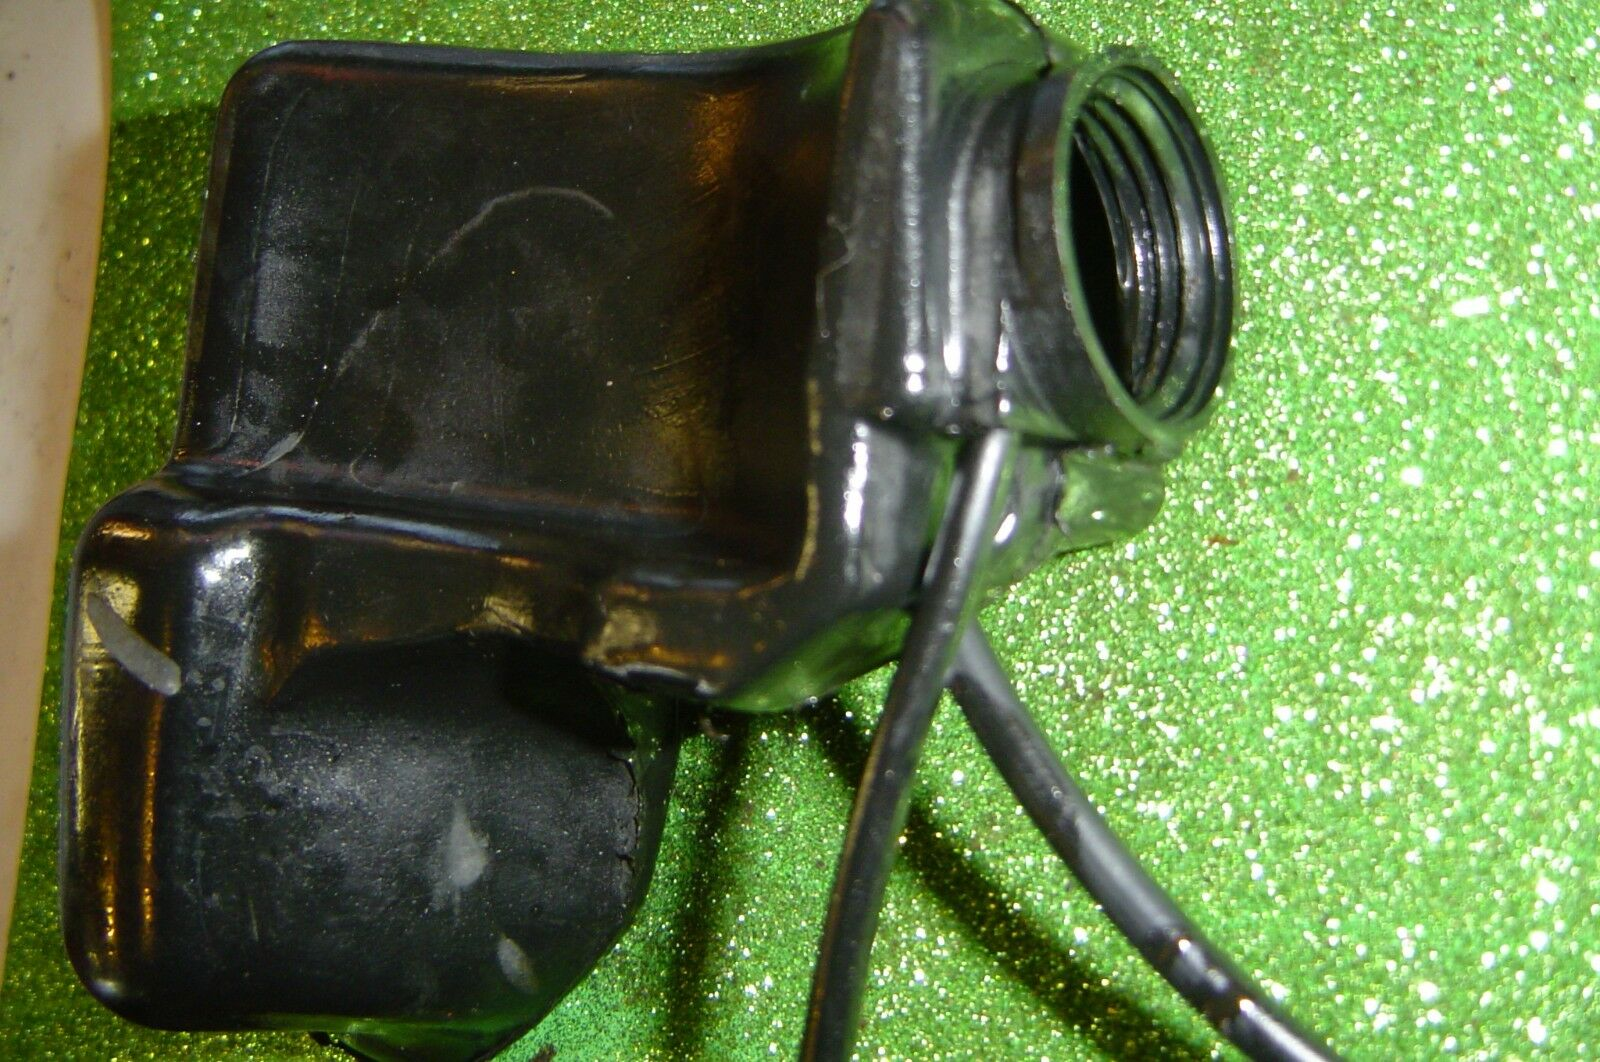 Homelite Xl2 Chainsaw Oil Tank Box2575r 750. 1 Of 1only Available. Wiring. Diagram Homelite Xl2 Oil Tubing At Scoala.co